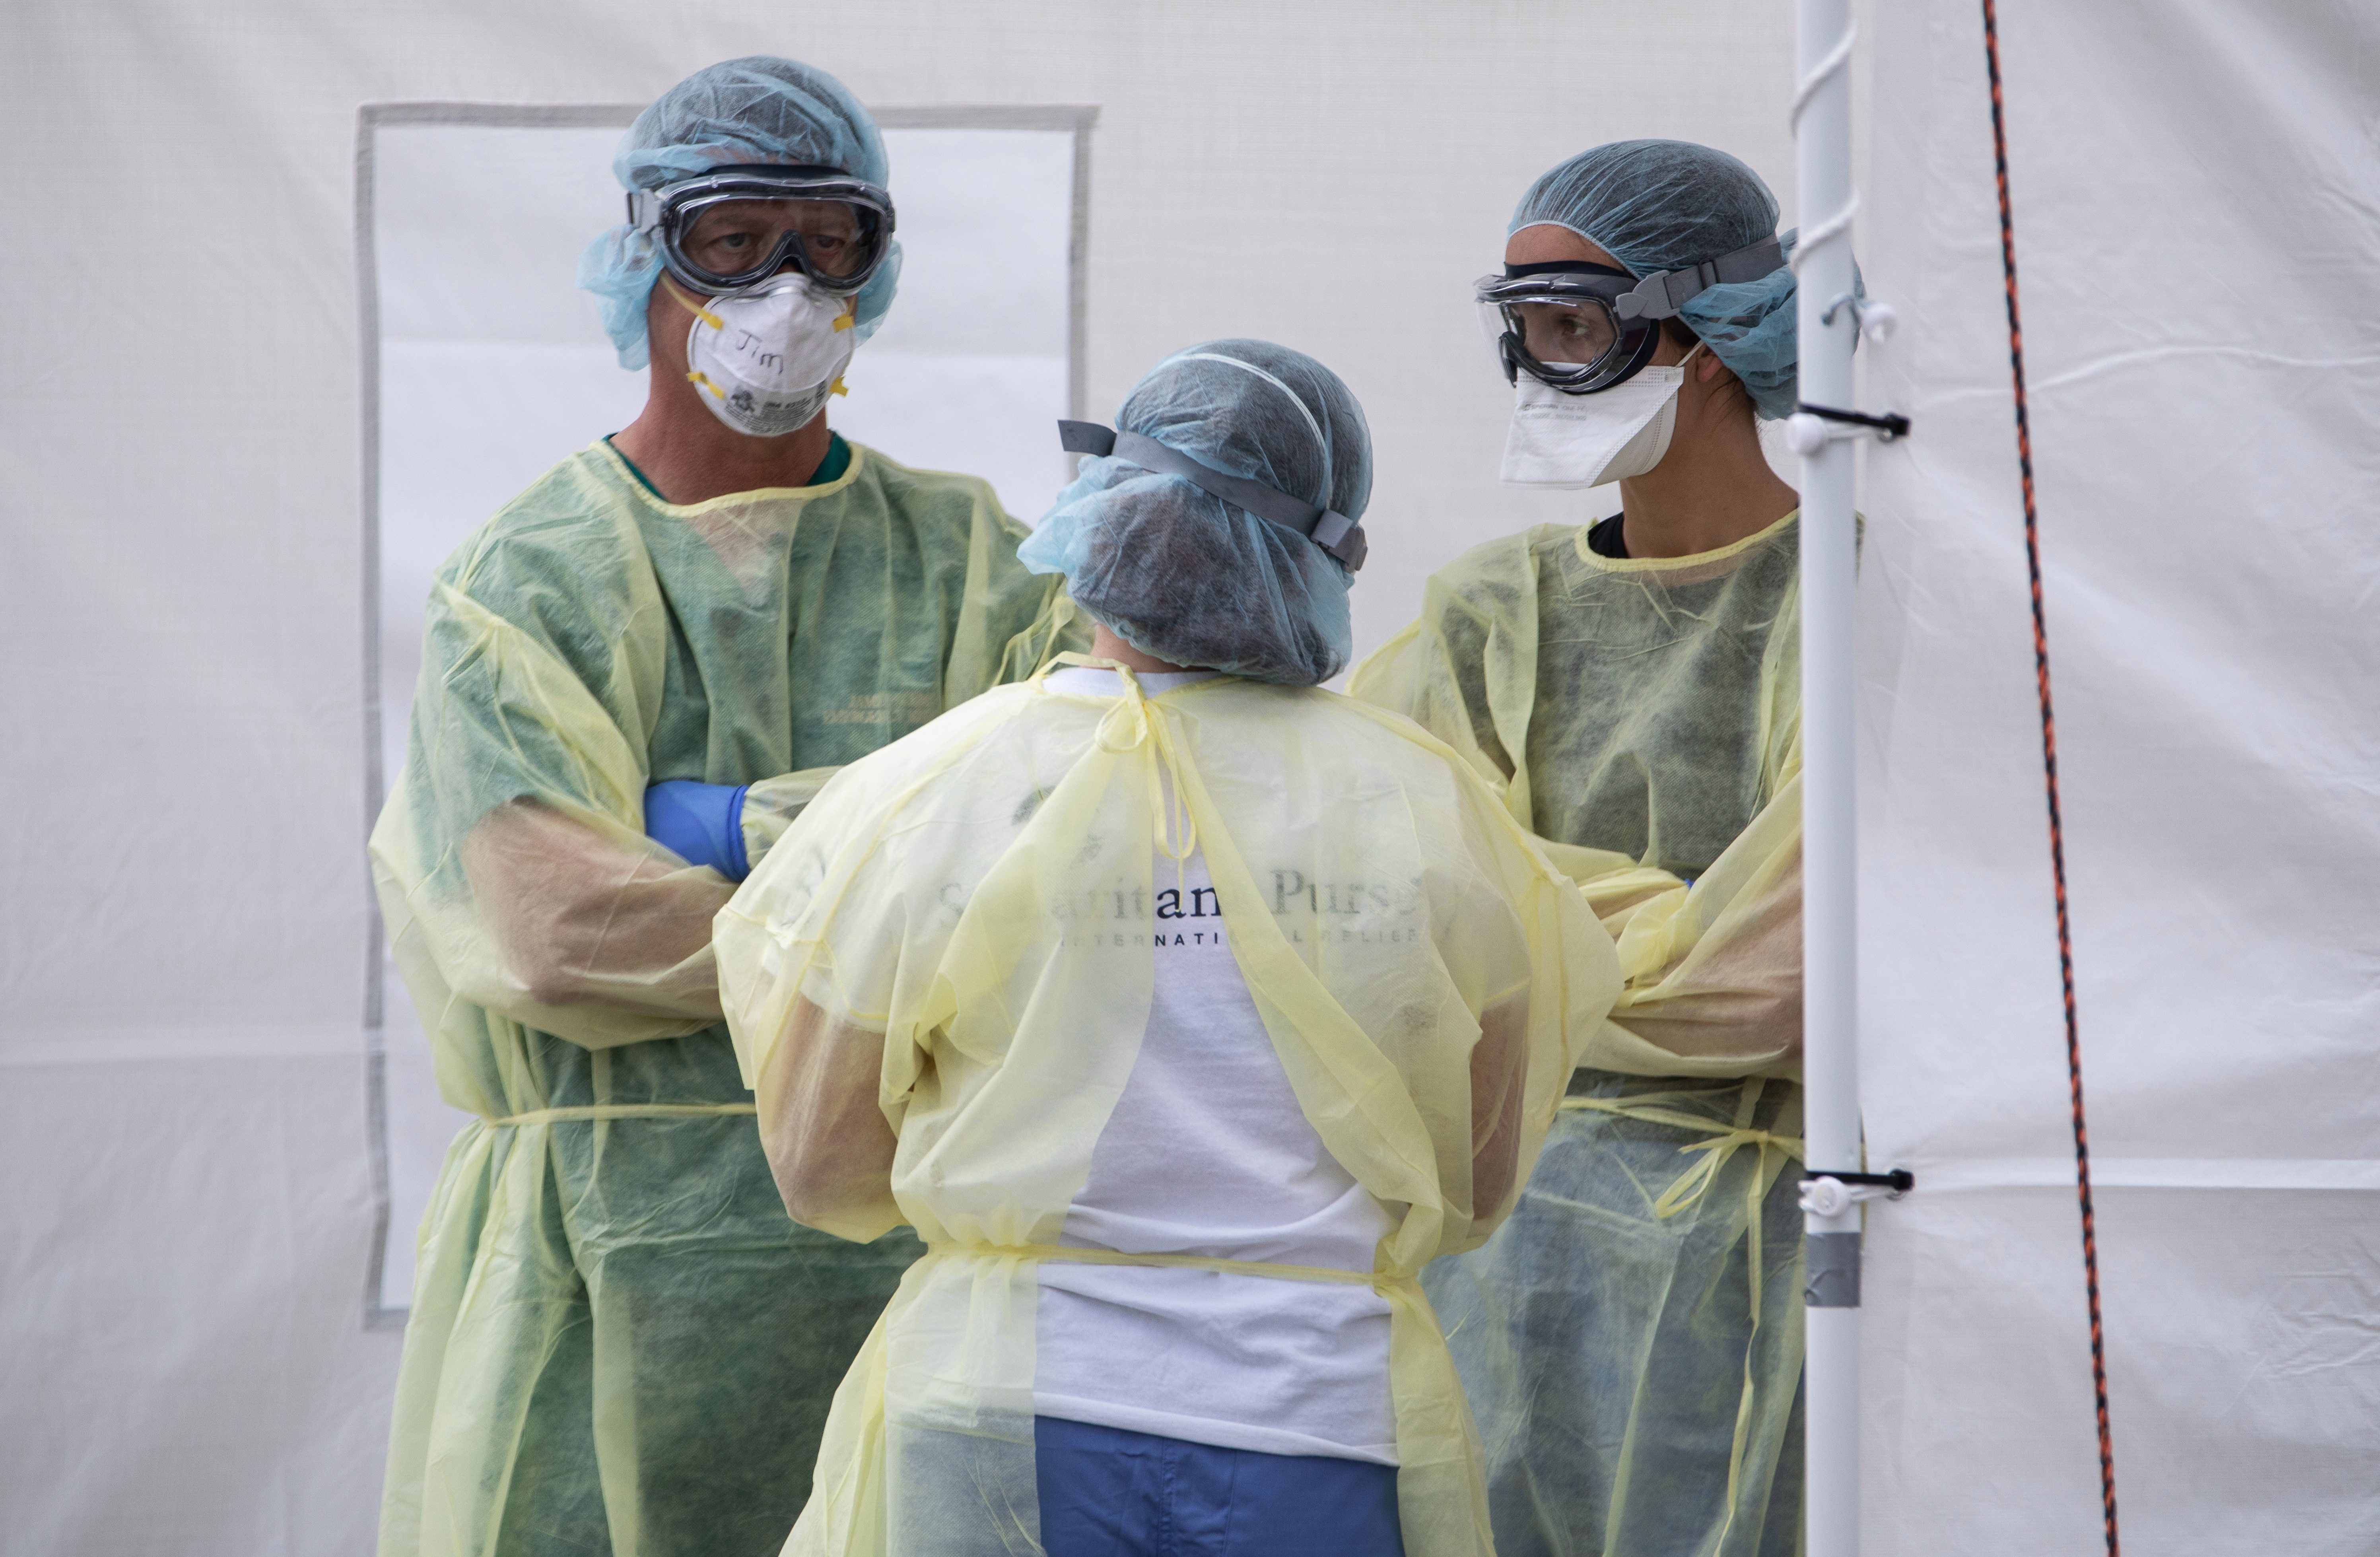 Experts believe Italy's coronavirus cases will peak in the next 10 days as the nation's death toll hit 10,779 yesterday